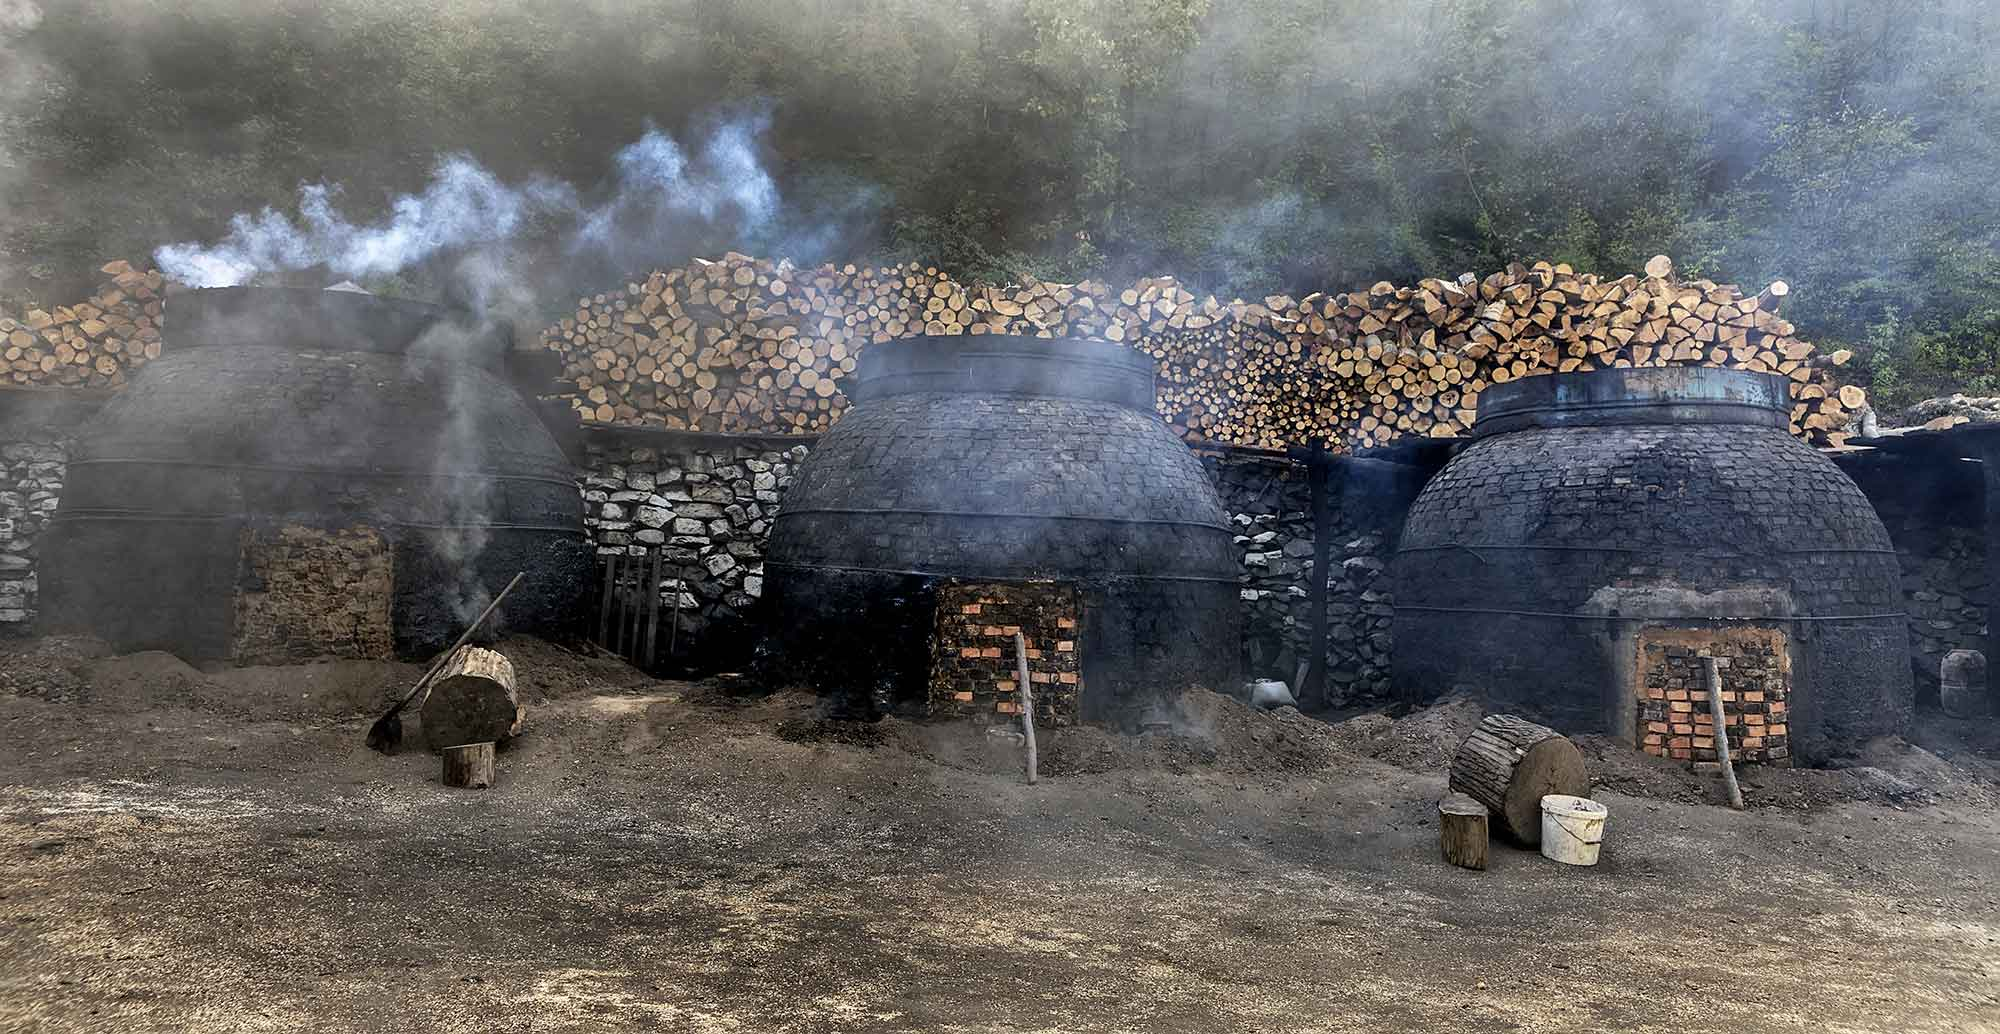 Traditional way of making charcoal